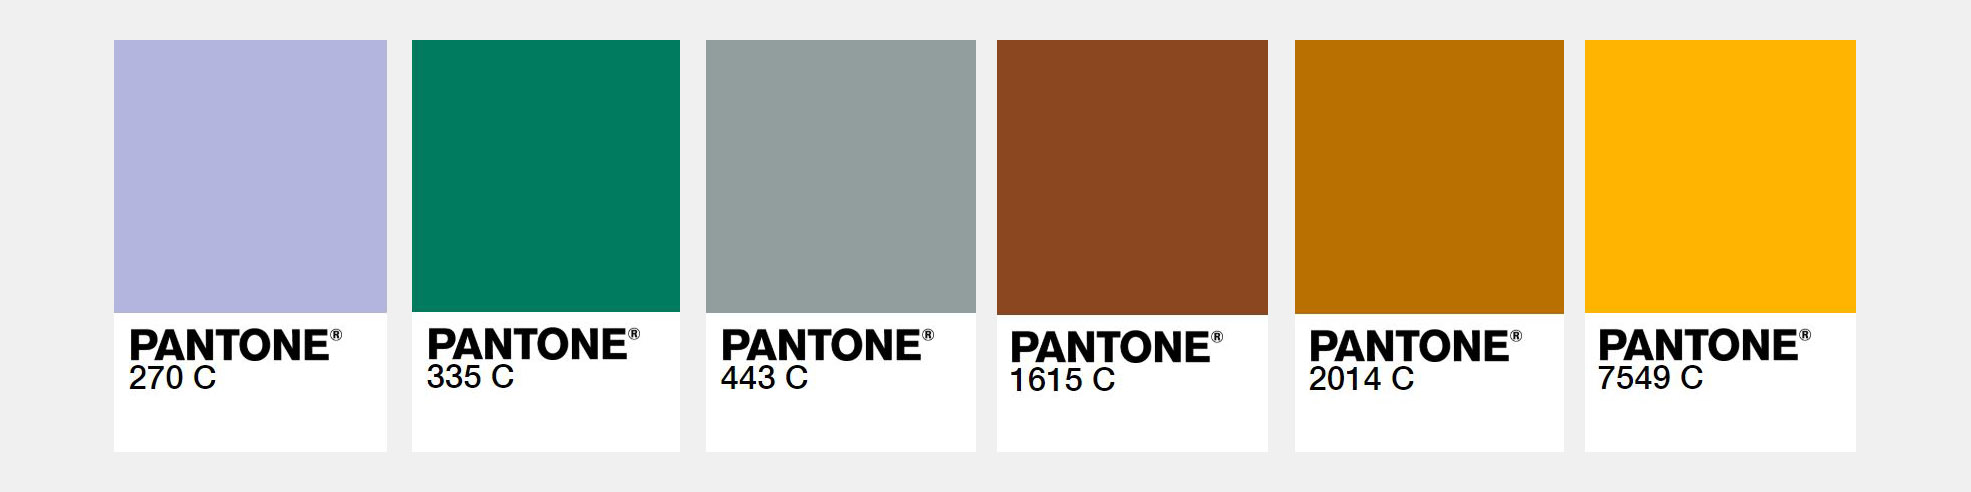 WHITEHOUSE_PANTONE_2